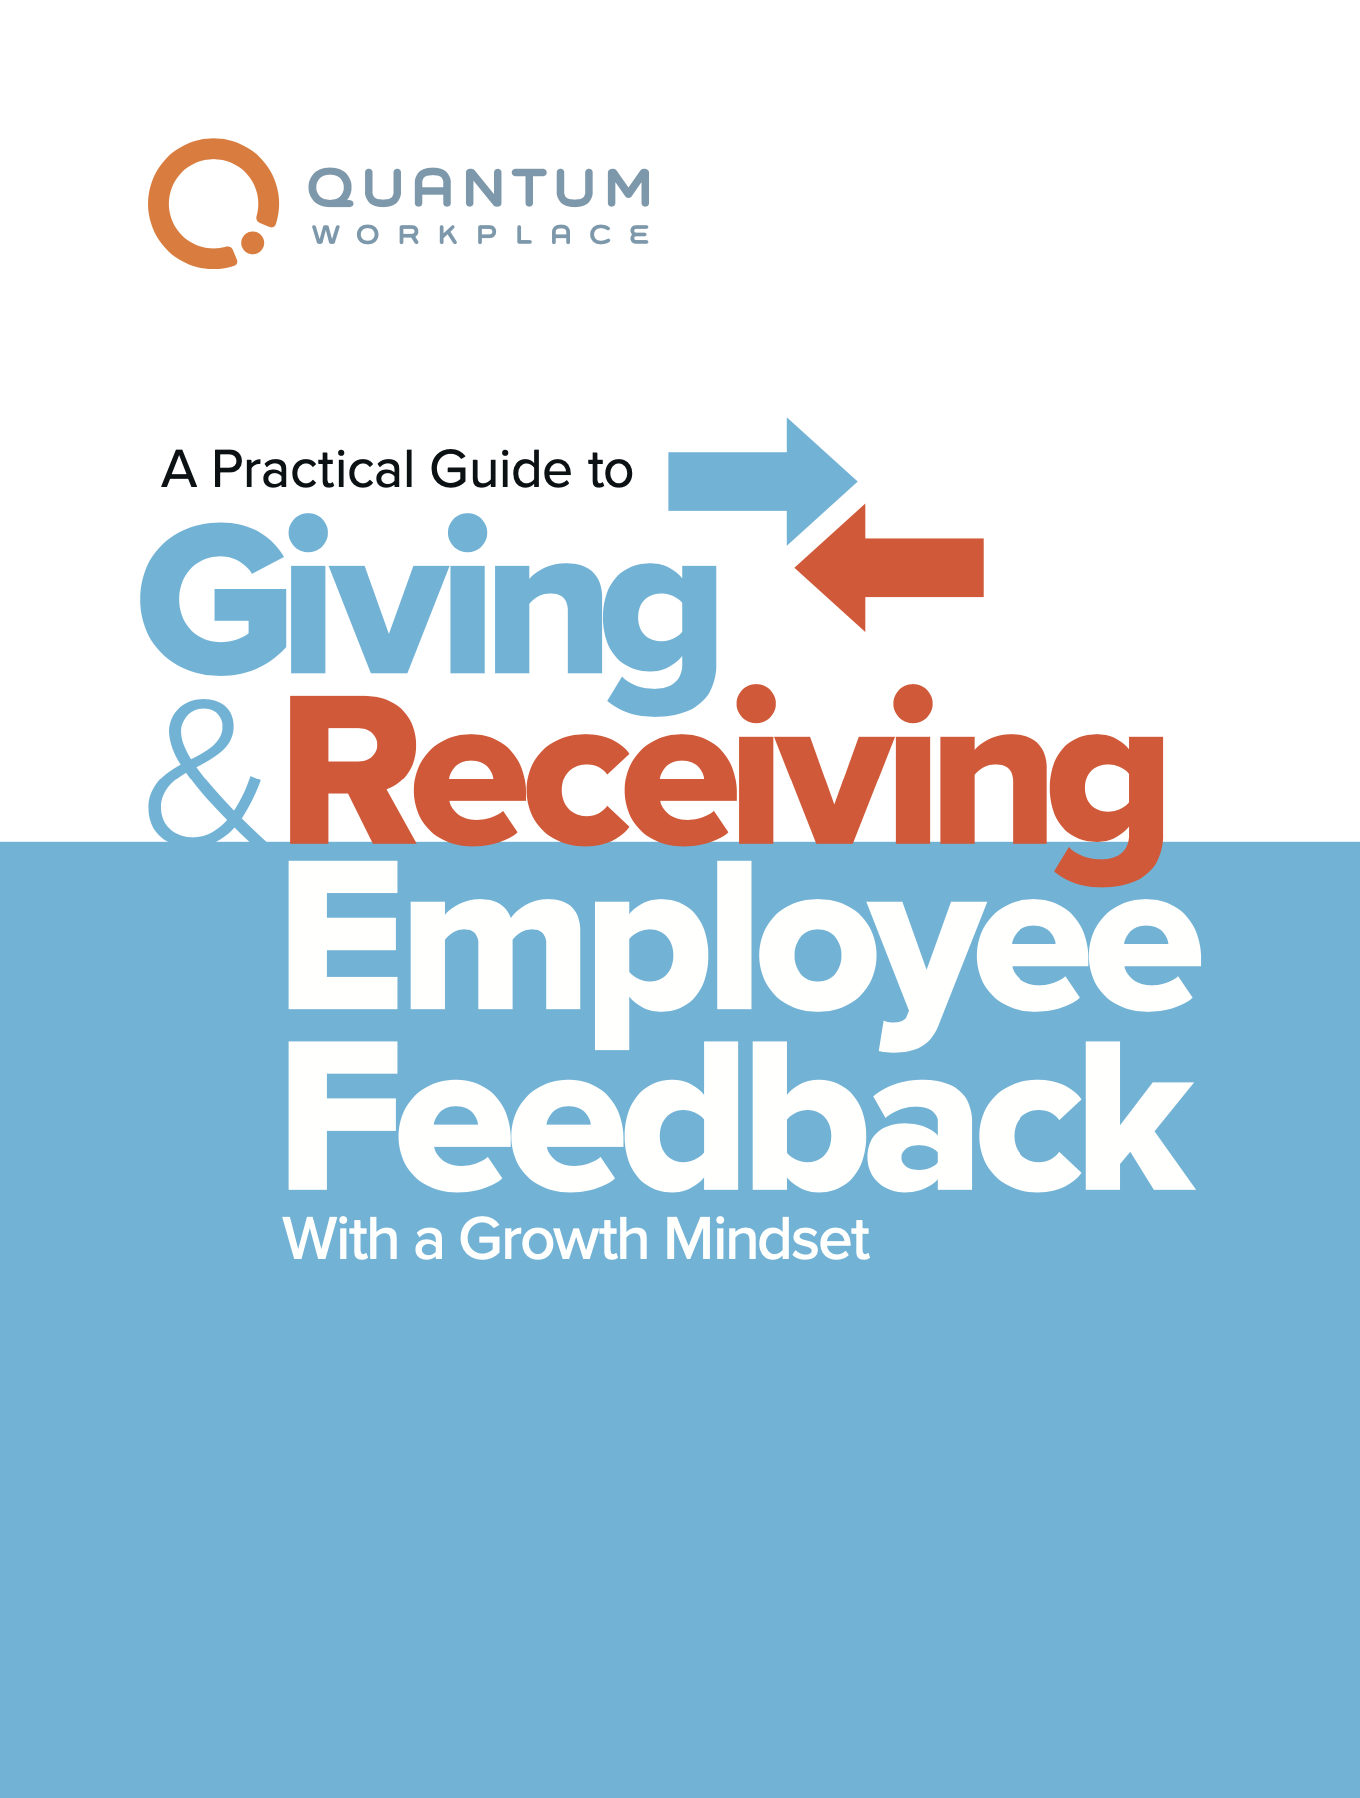 A-Practical-Guide-to-Giving-and-Receiving-Employee-Feedback-1